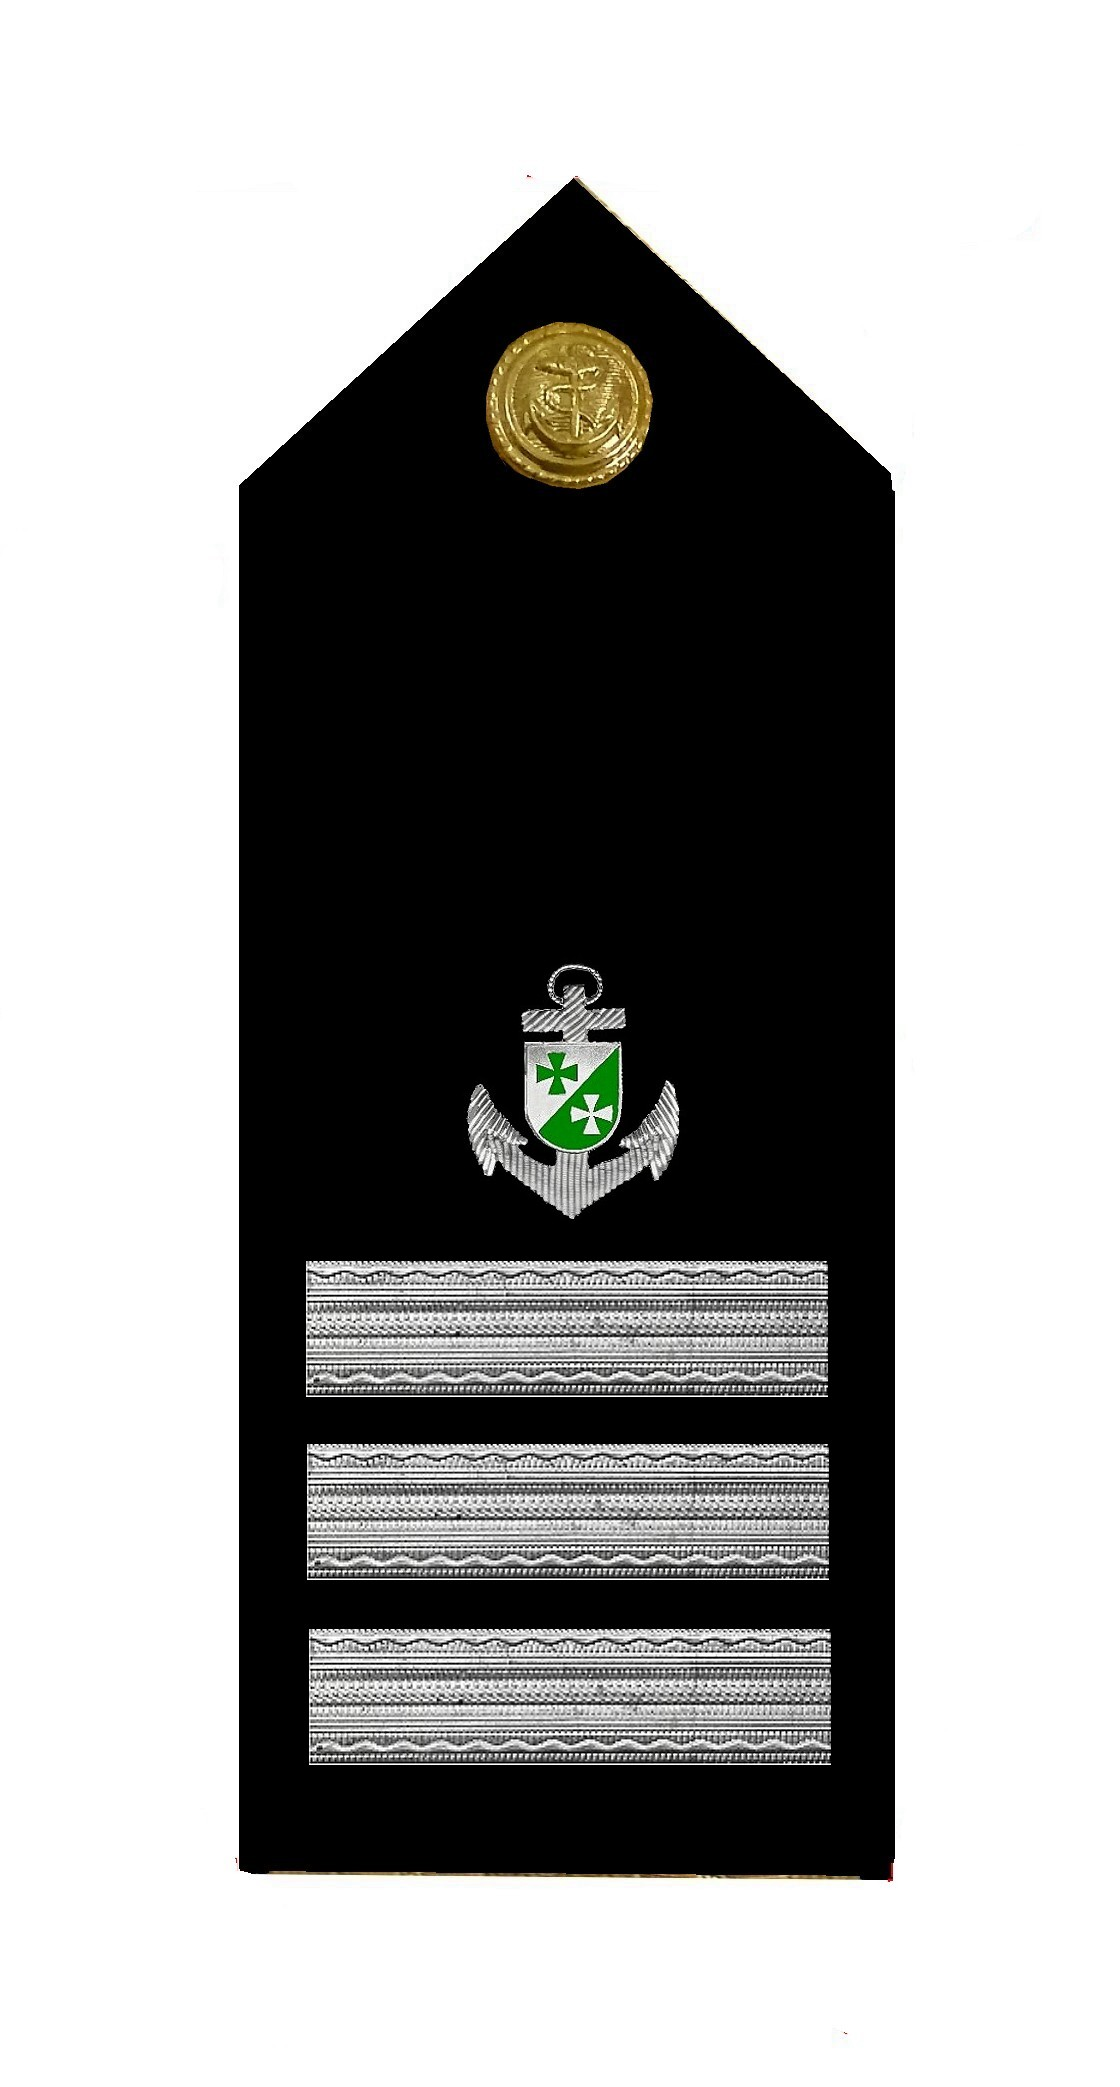 Petty Officer